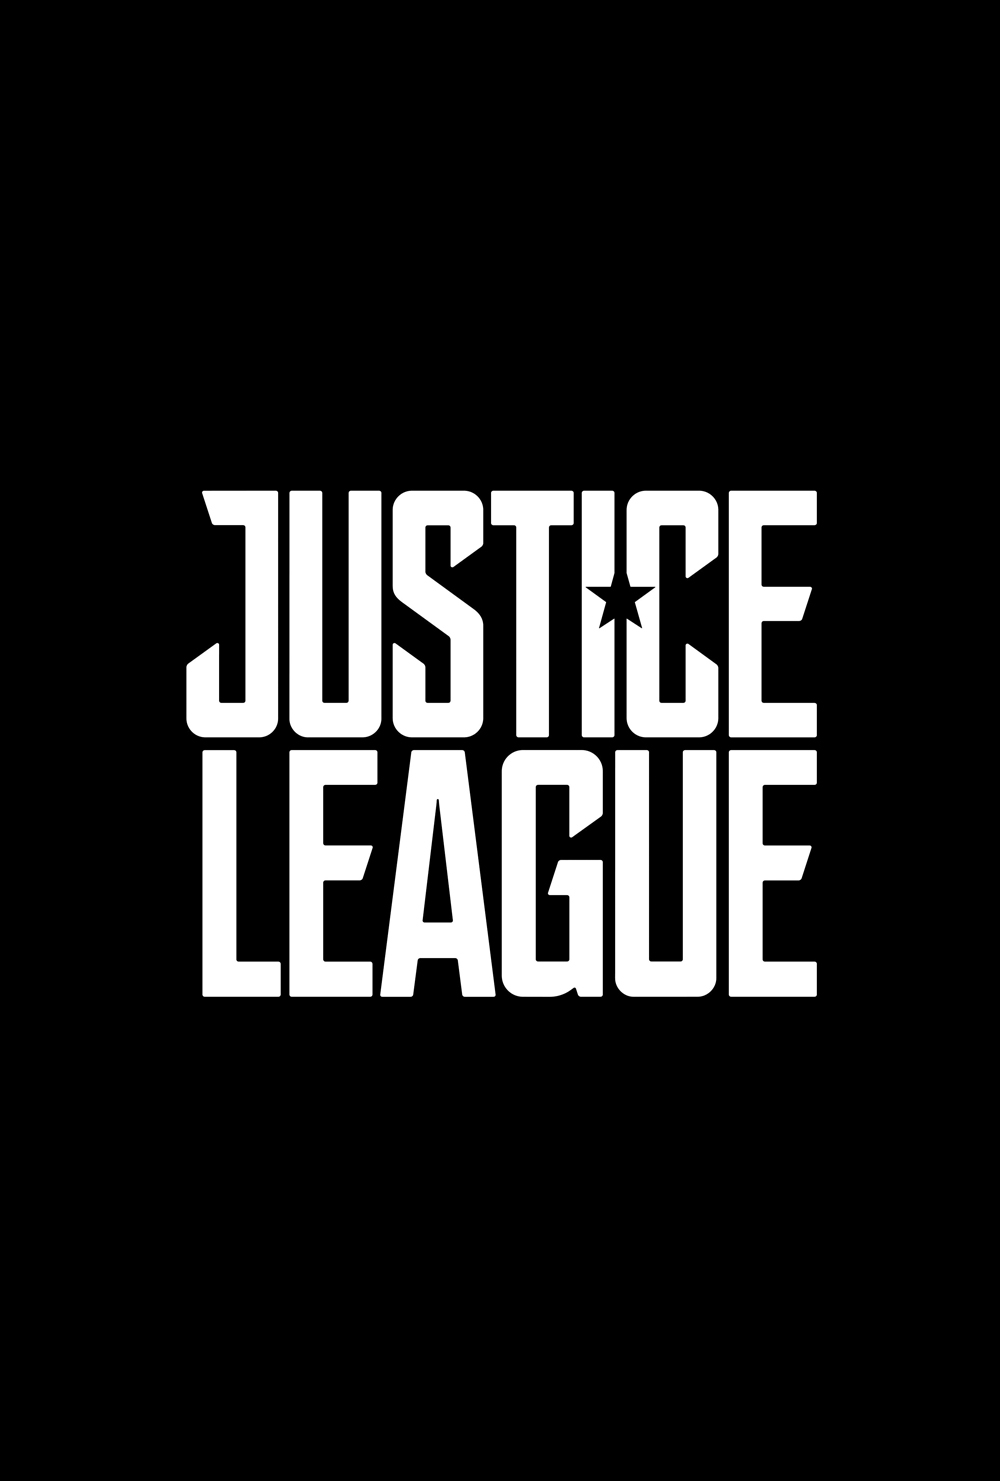 Justice-League-Movie-Logo-Black-BG.jpg